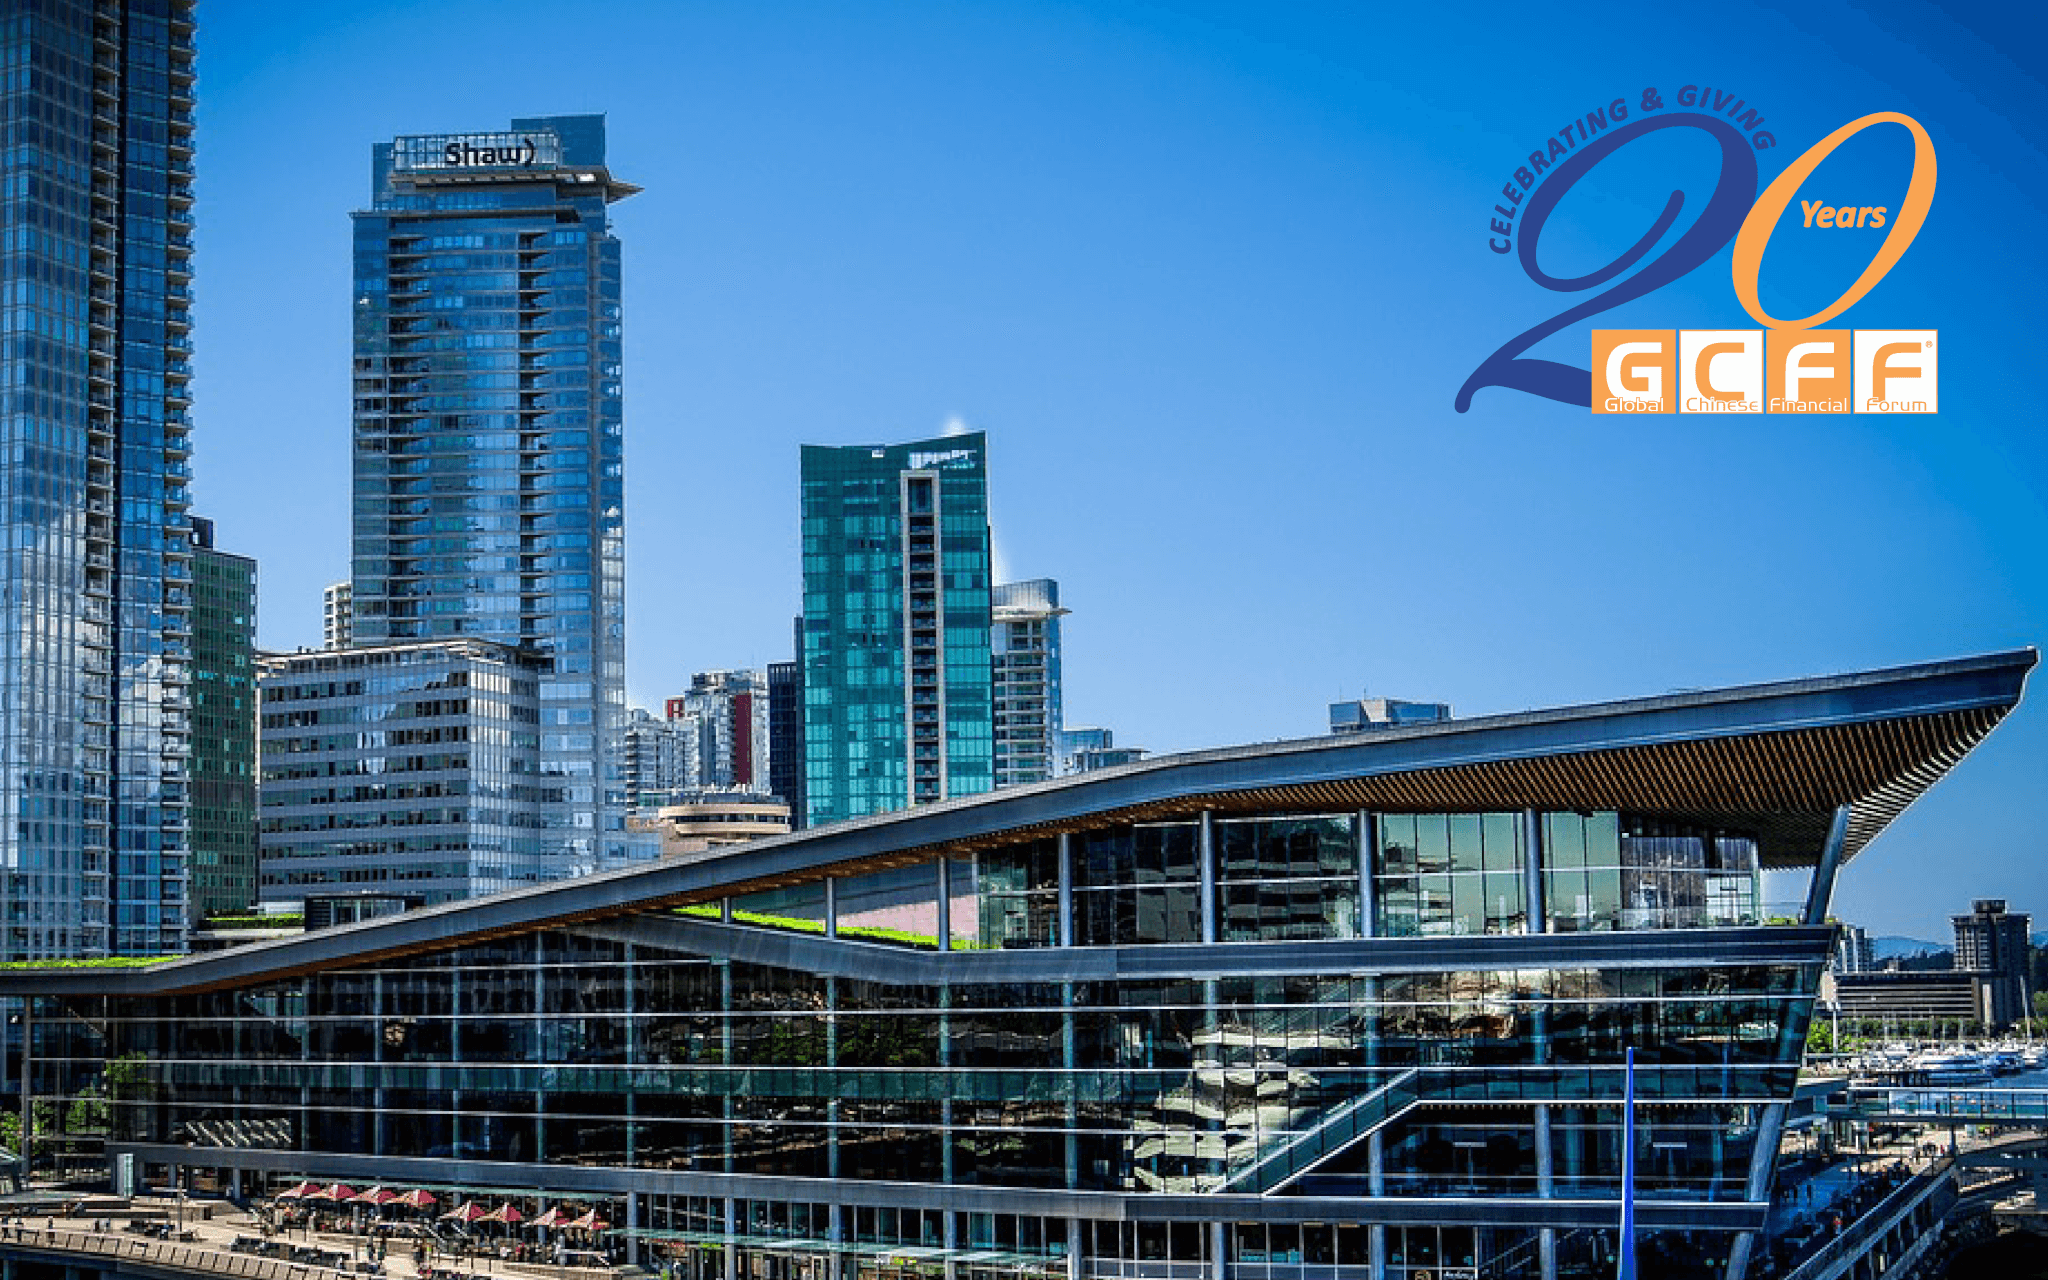 20th Annual GCFF Vancouver Conference  – Opening the Doors to Vancouver's Wealthy Chinese Investors